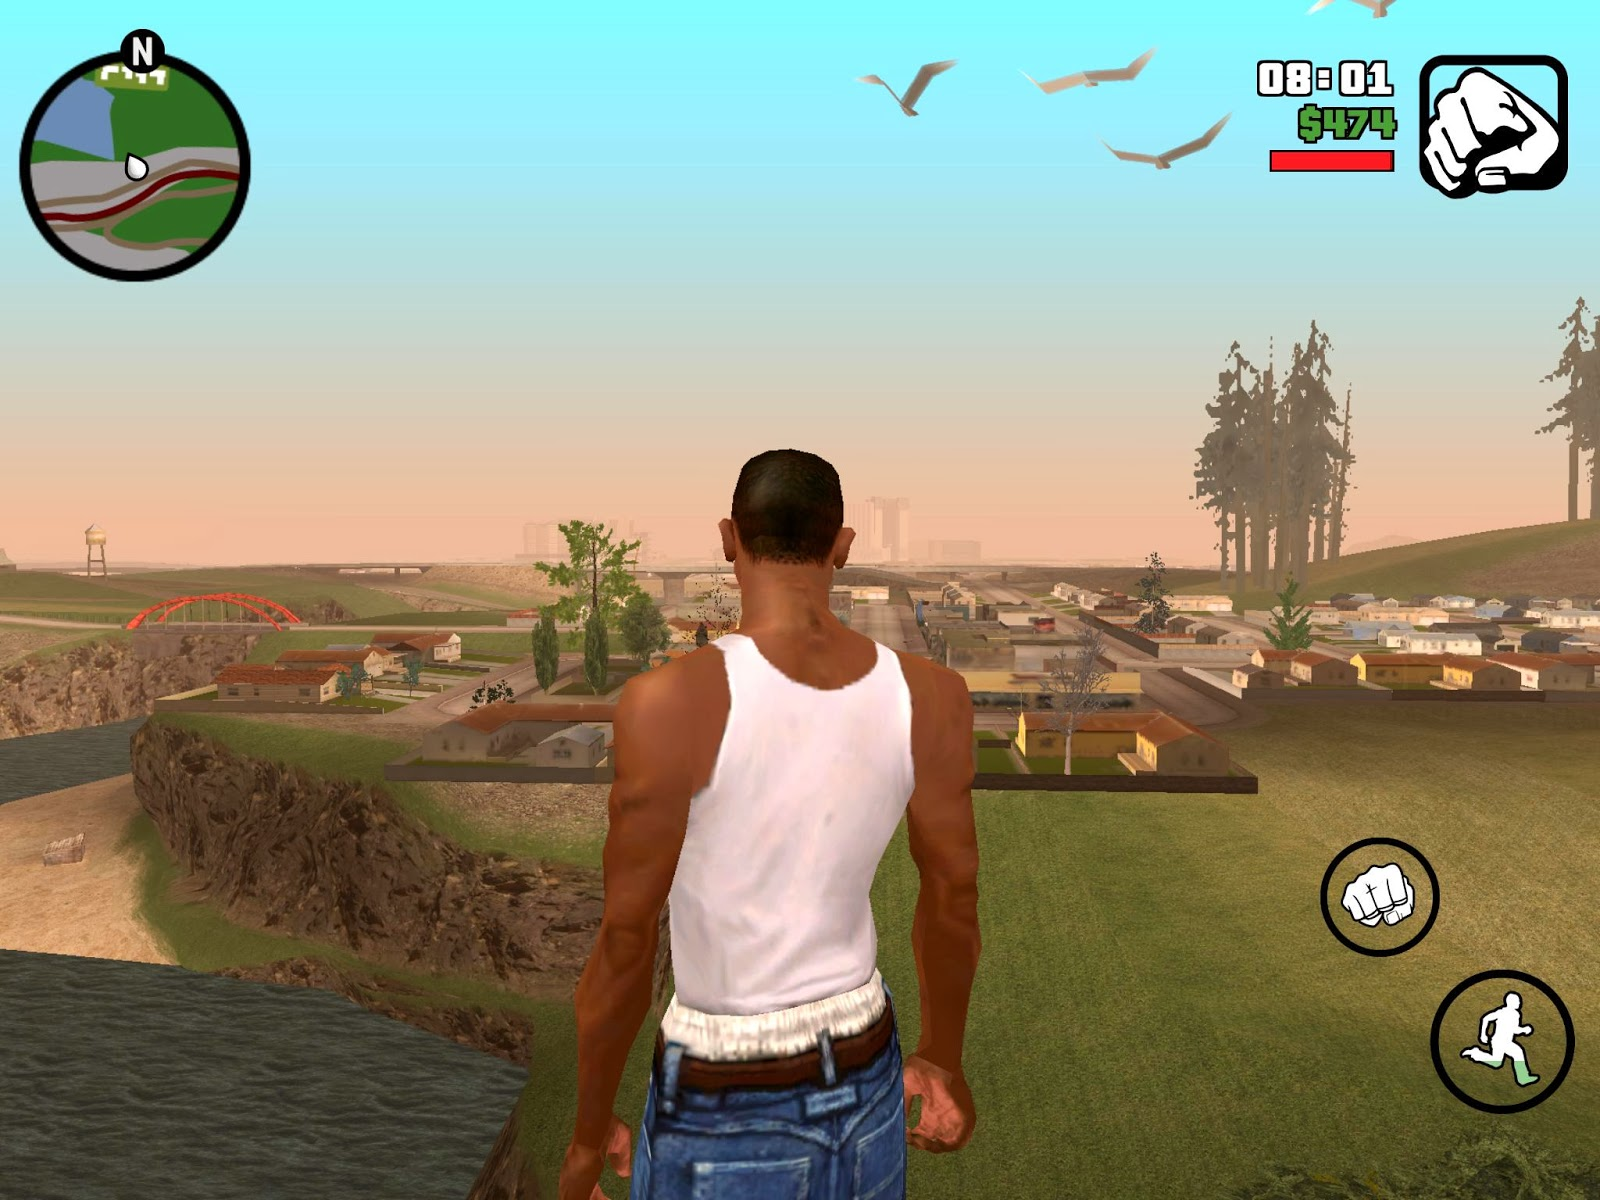 Grand Theft Auto III 1.6 Apk Full OBB Data latest